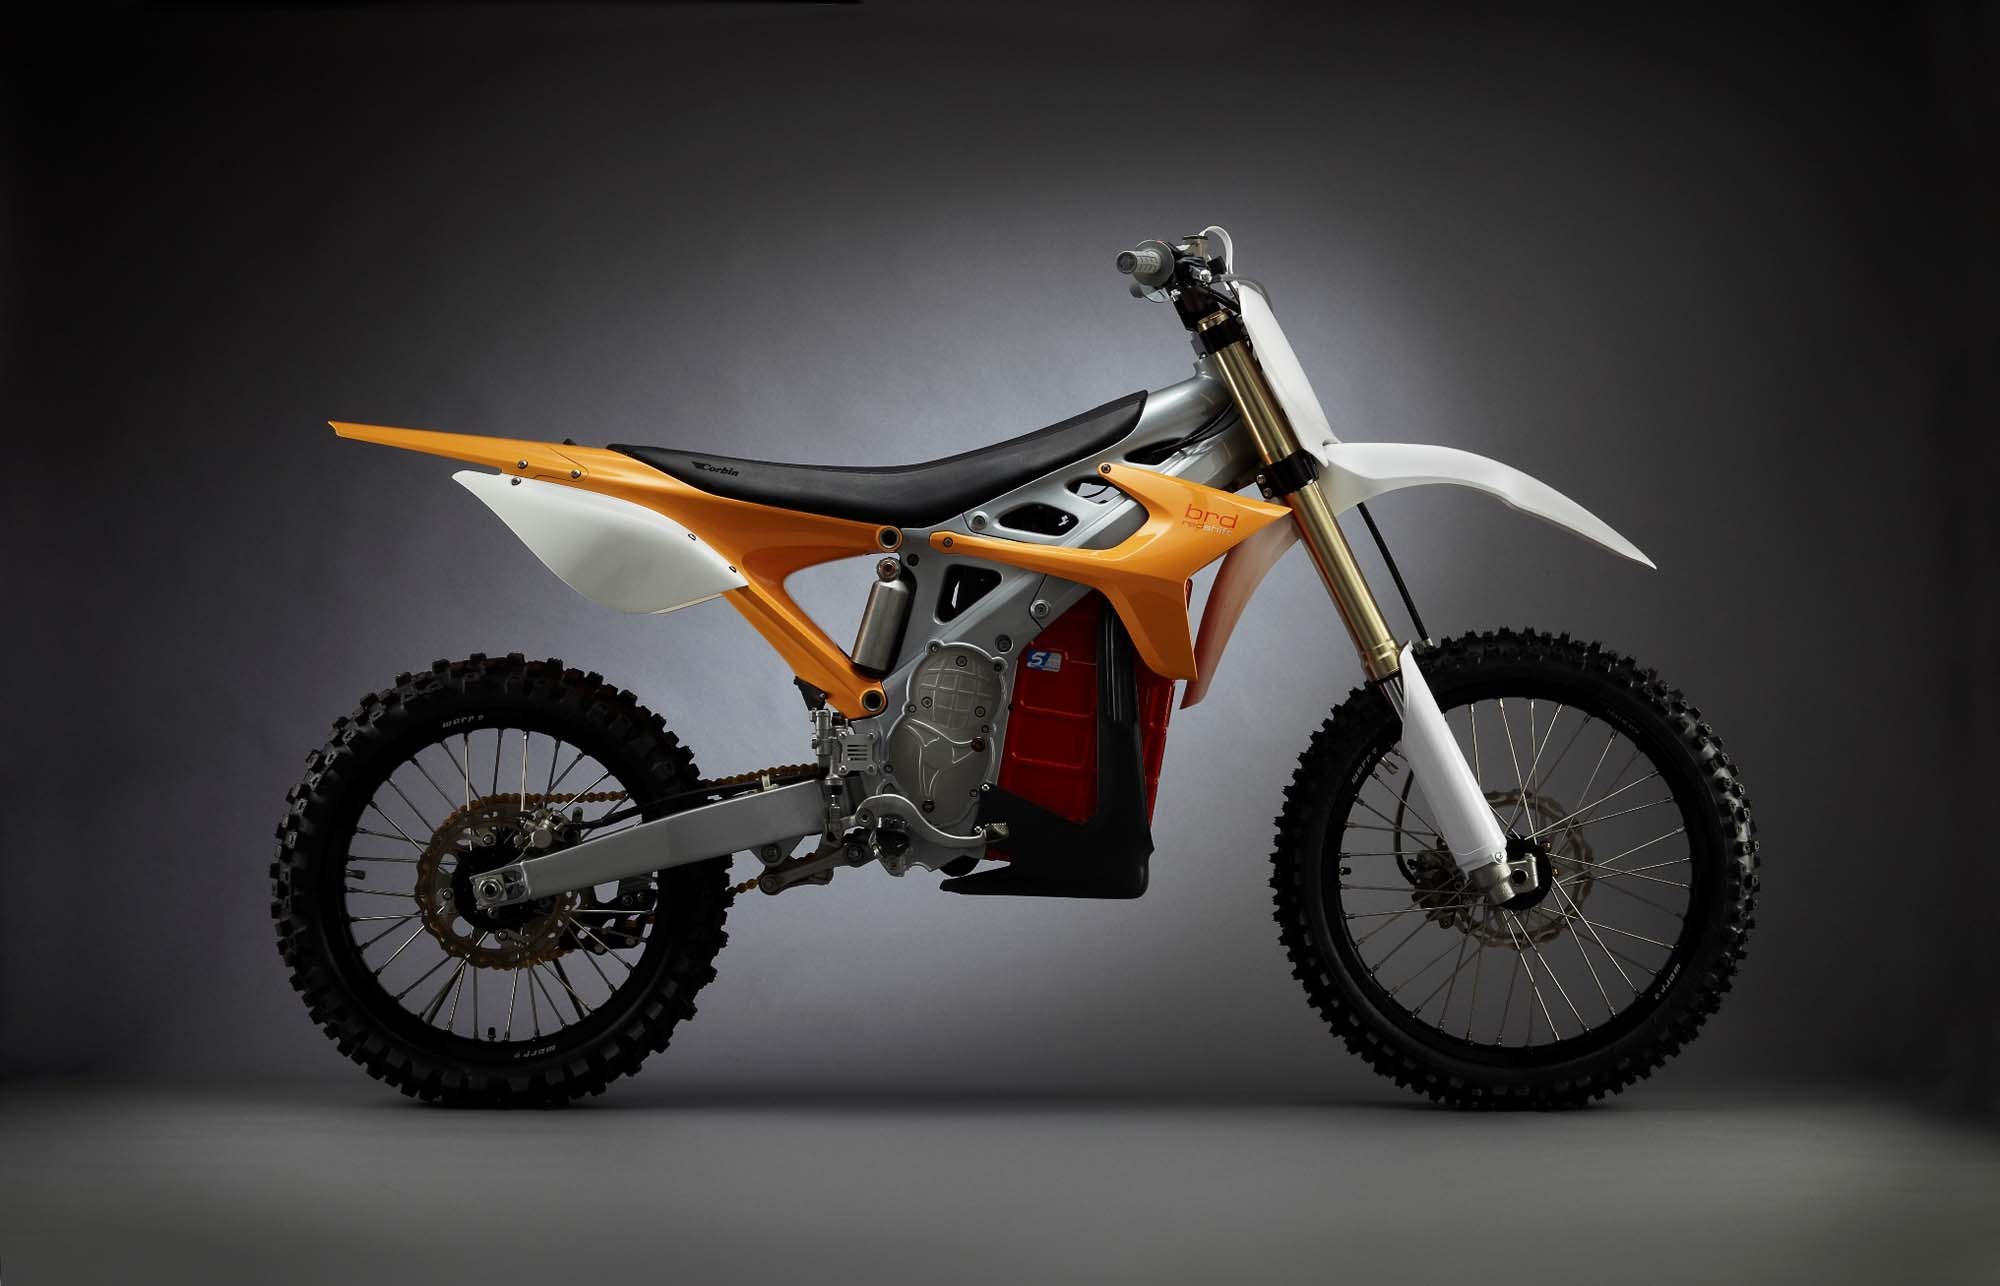 Brd Redshift Mx Your Electric Lites Class Race Bike